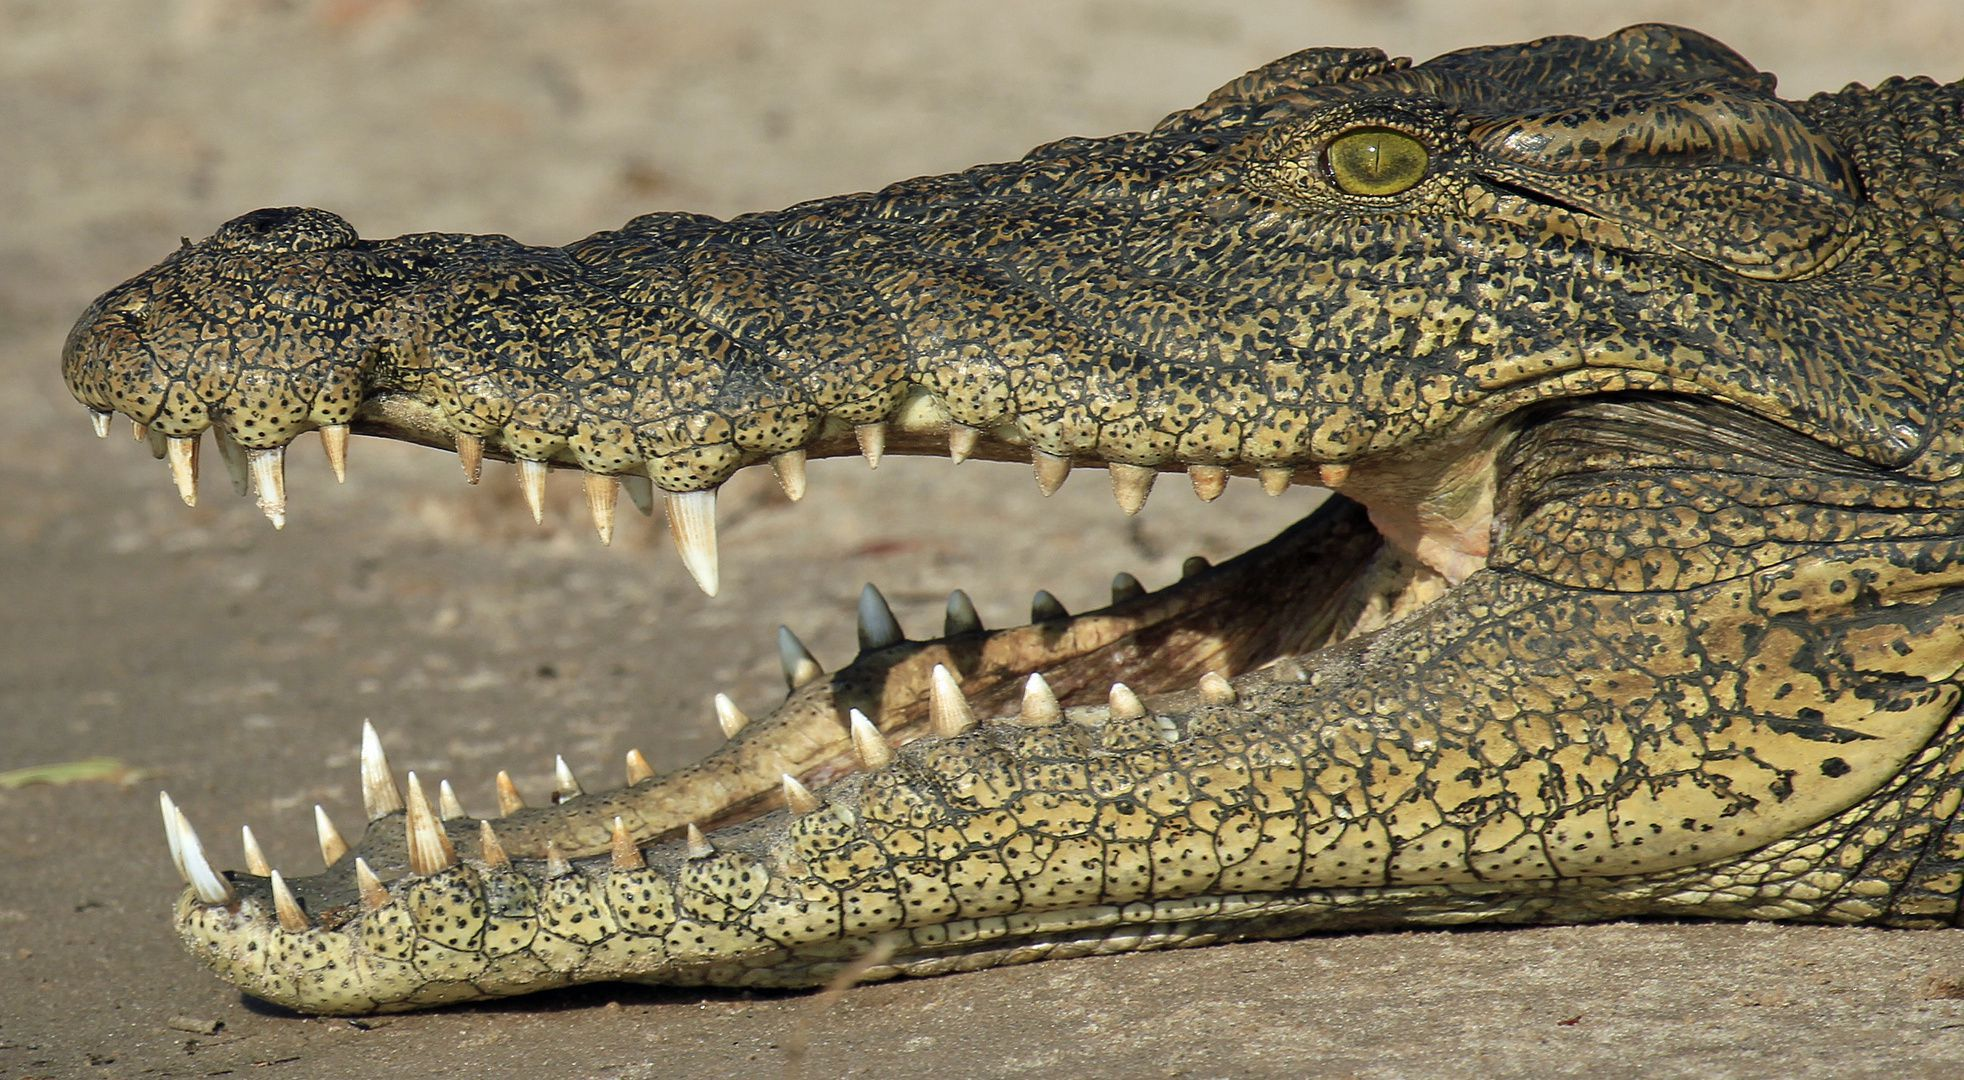 Alligator Botswana High Quality Wallpapers